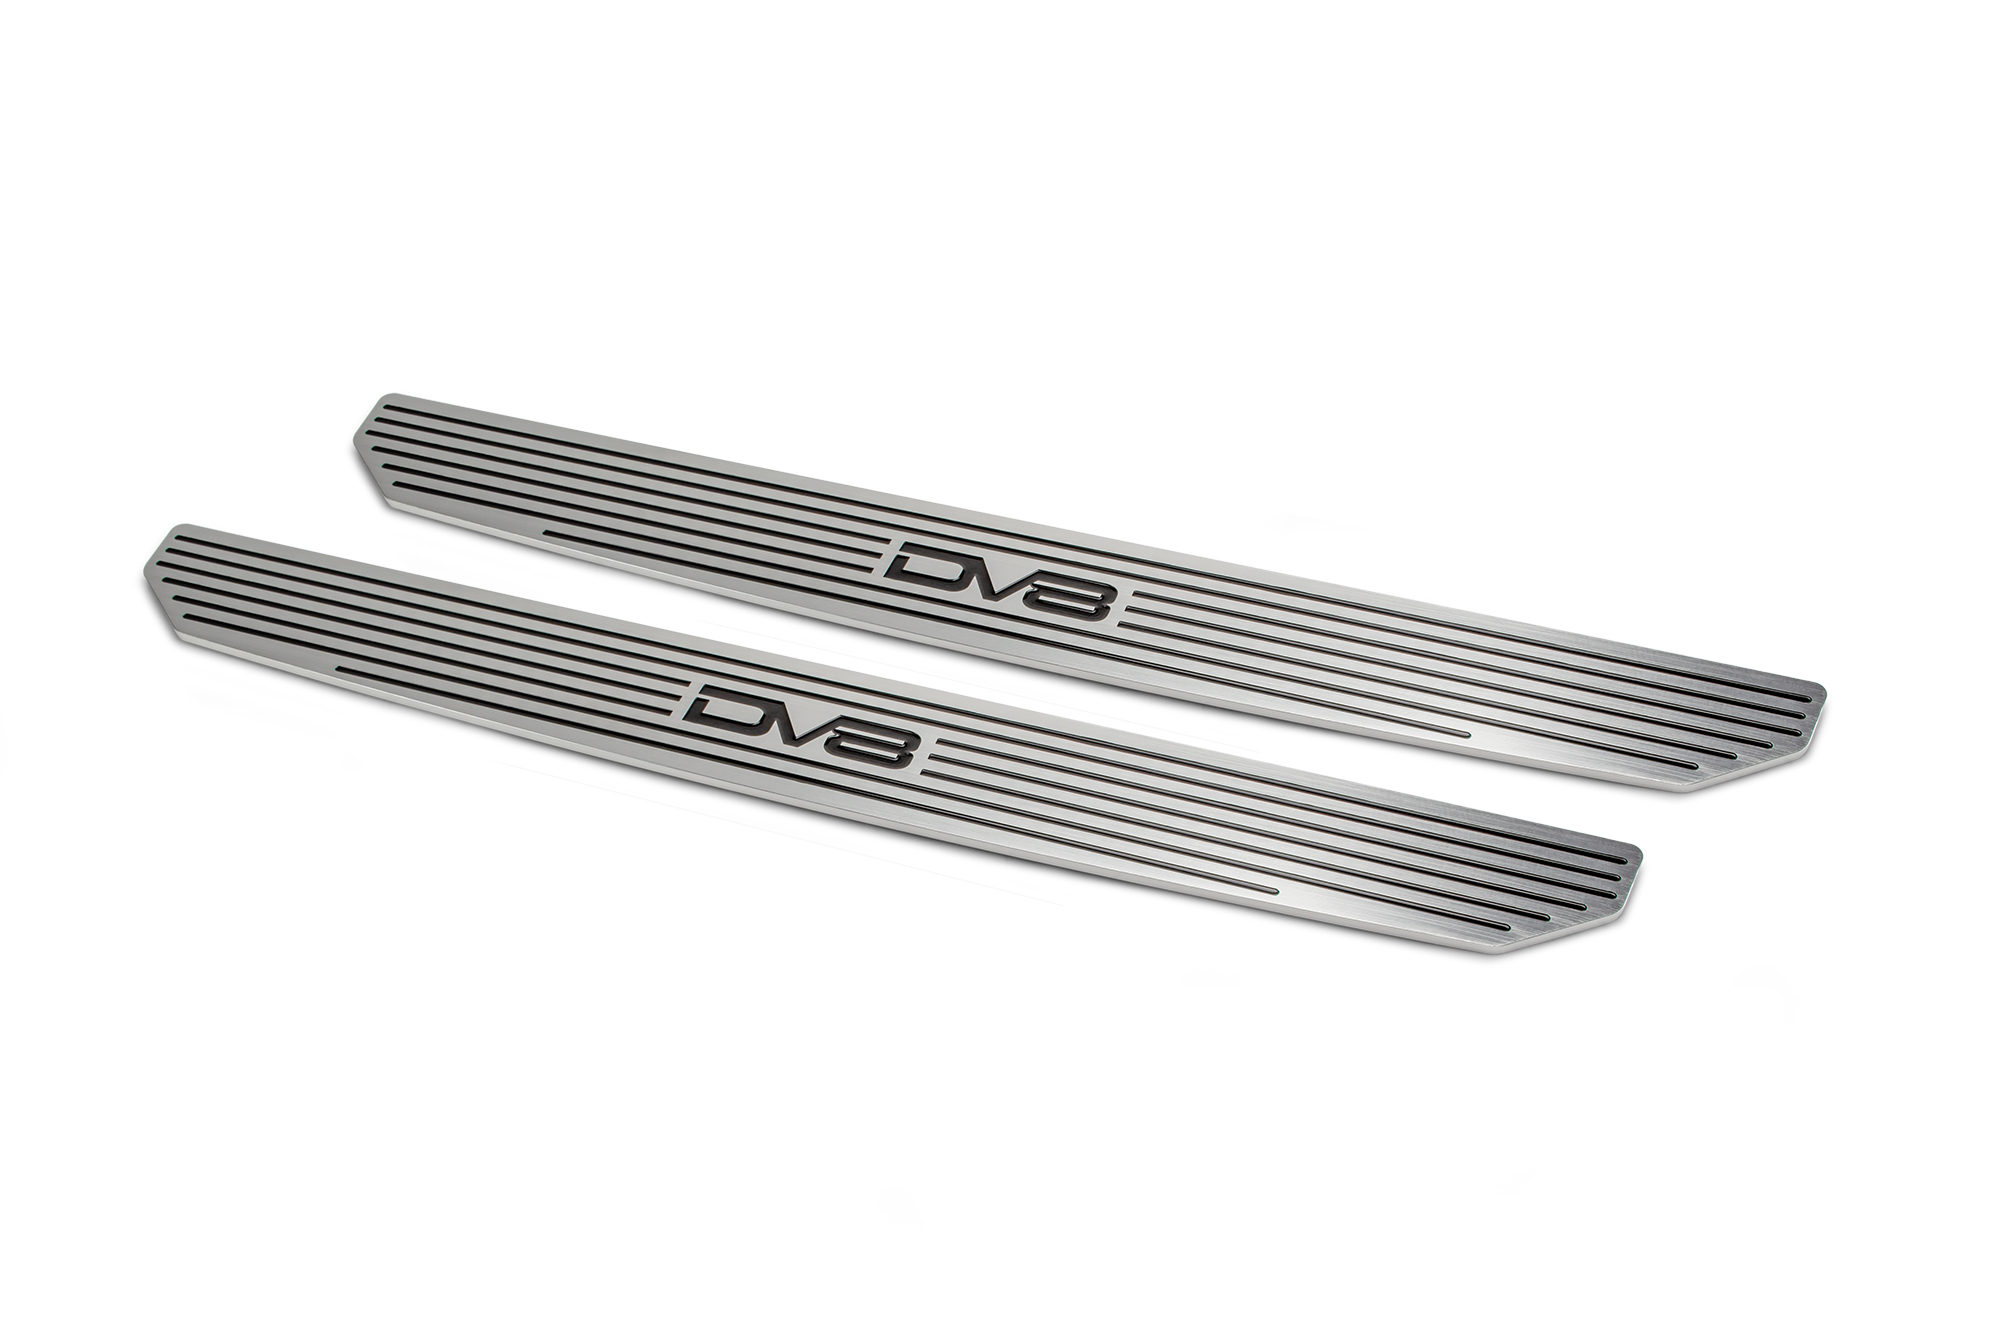 Jeep JL 4 Door Rear Sill Plates 18-Pres Wrangler JL with DV8 Logo 4 Door Only DV8 Offroad